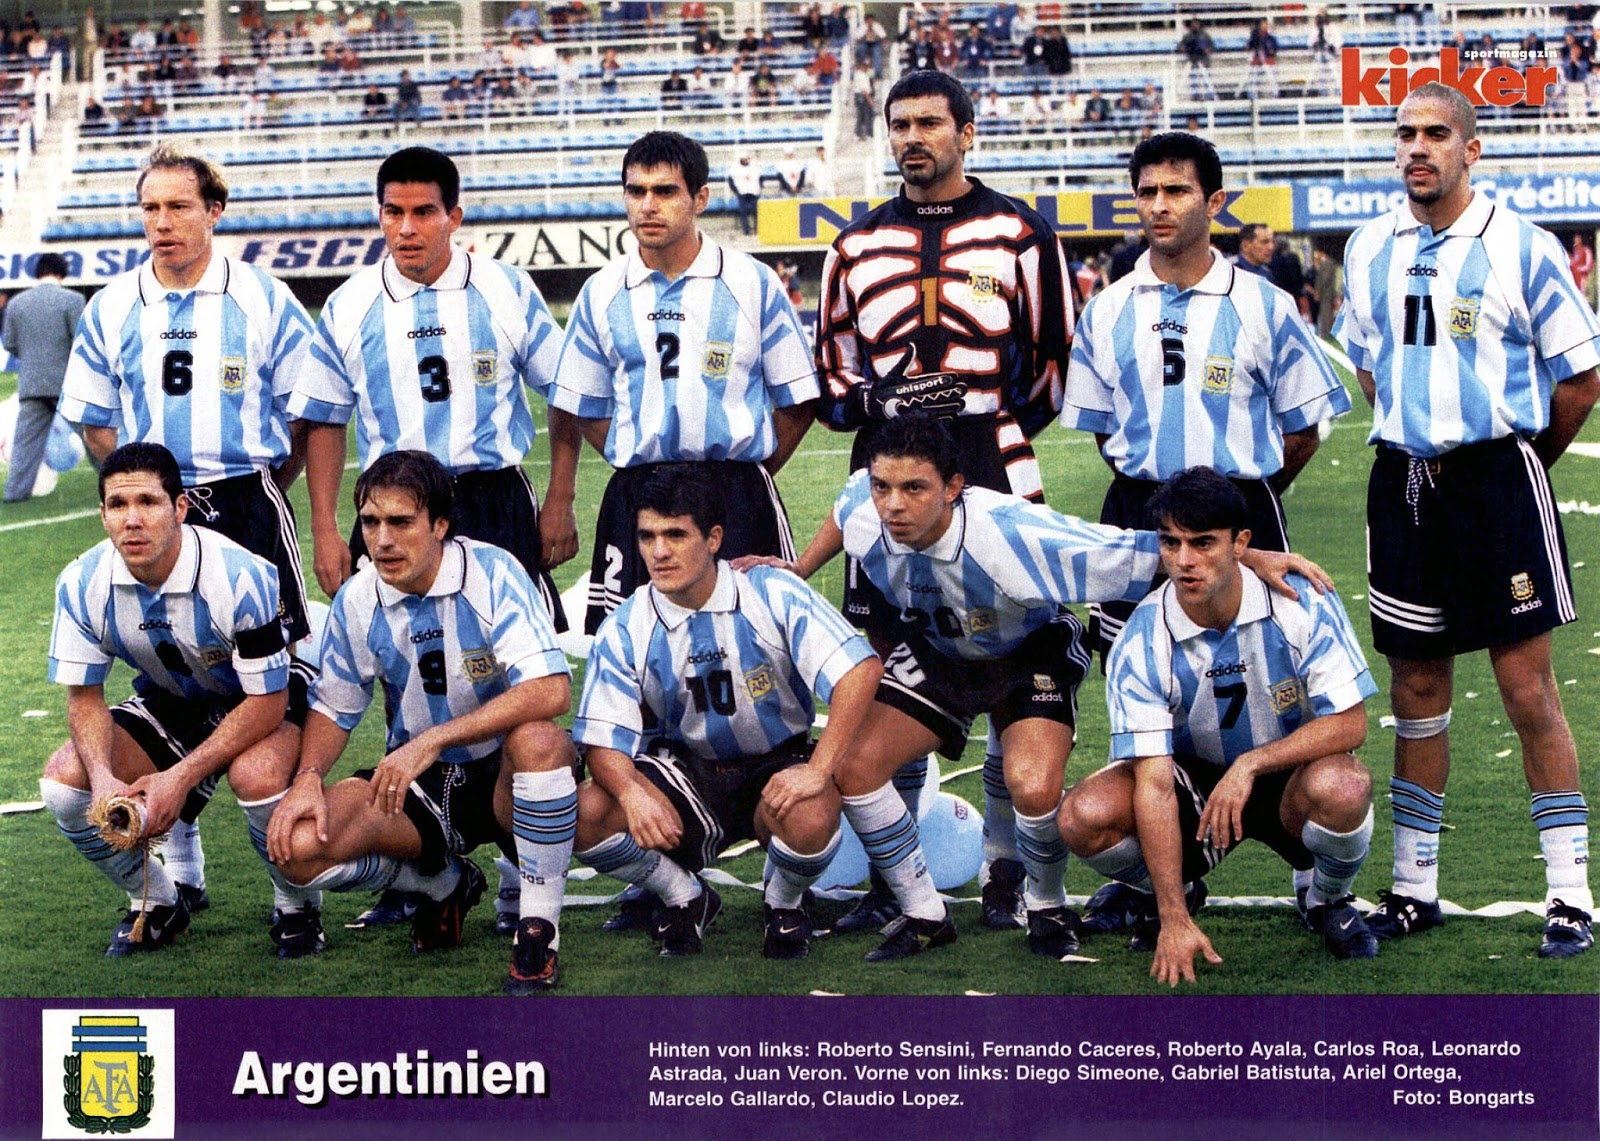 argentina 1 Livescorecom - argentina live soccer scores, the first live score site on the internet, powered by livescorecom since 1998 live soccer from all around the world.